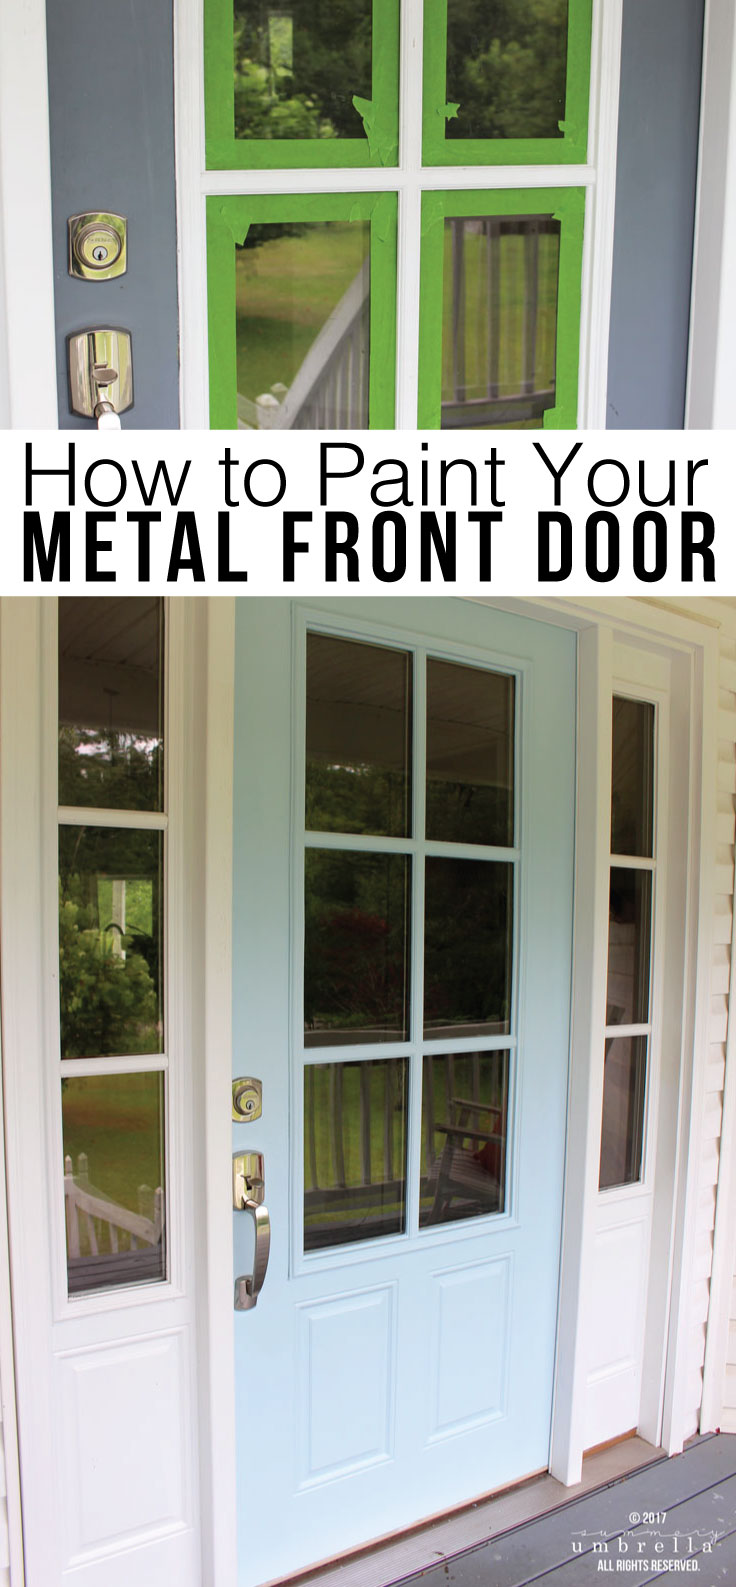 How to paint your metal front door the easy way with just a few simple steps. It's super simple, and requires only some basic supplies.